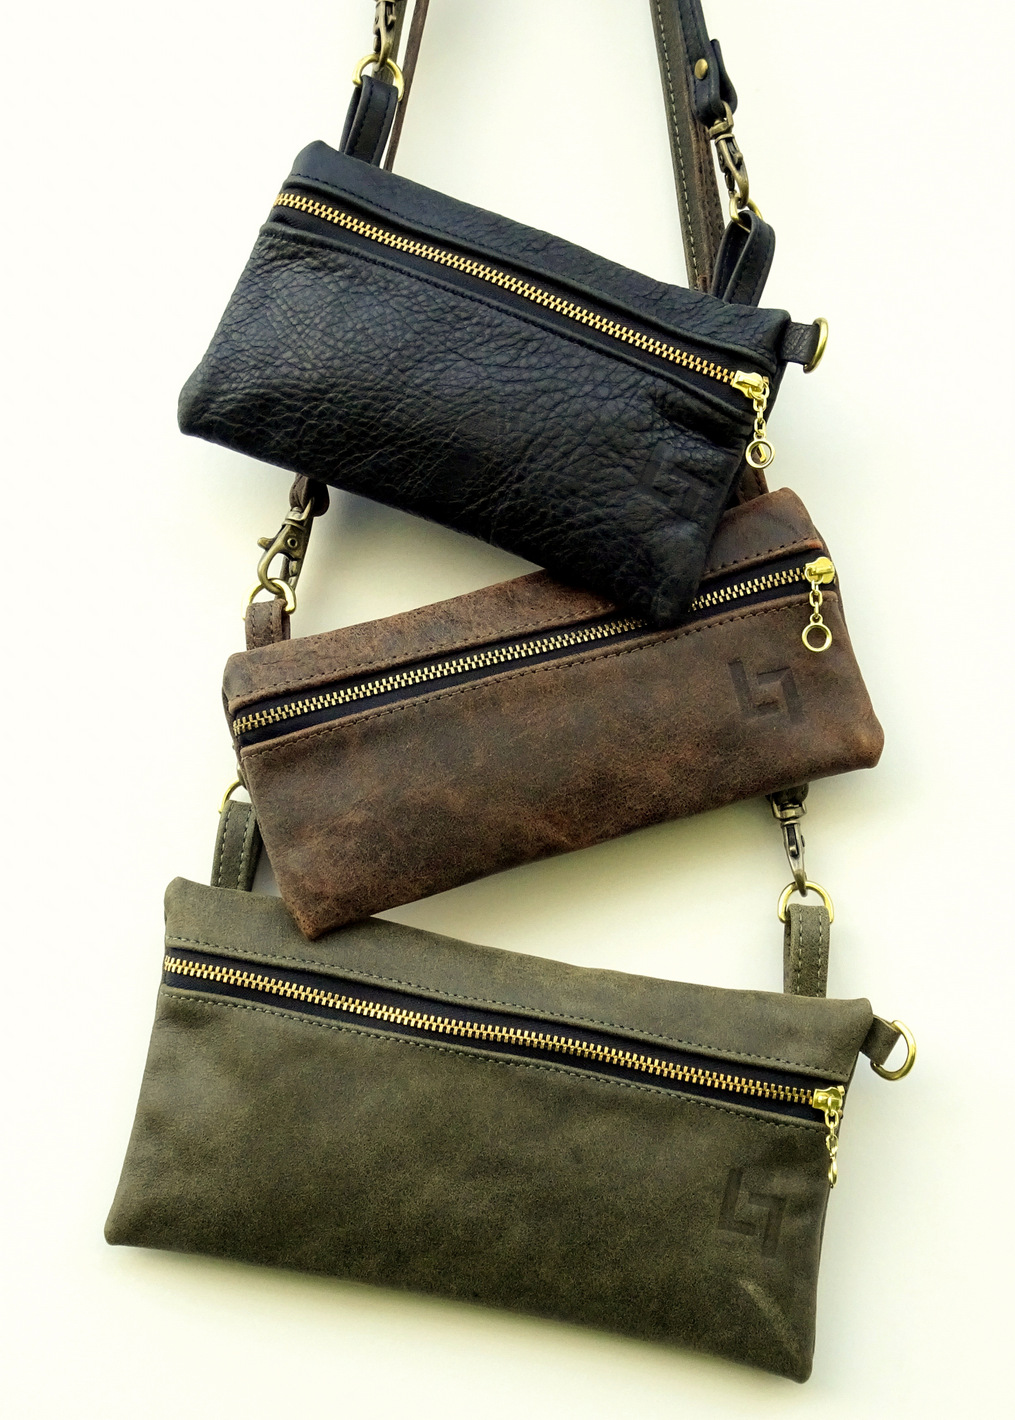 1-Handcrafted Leather Shoulder Bag, The Minimalist, LaPlace Leather, Memphis Tennessee-1-2.JPG